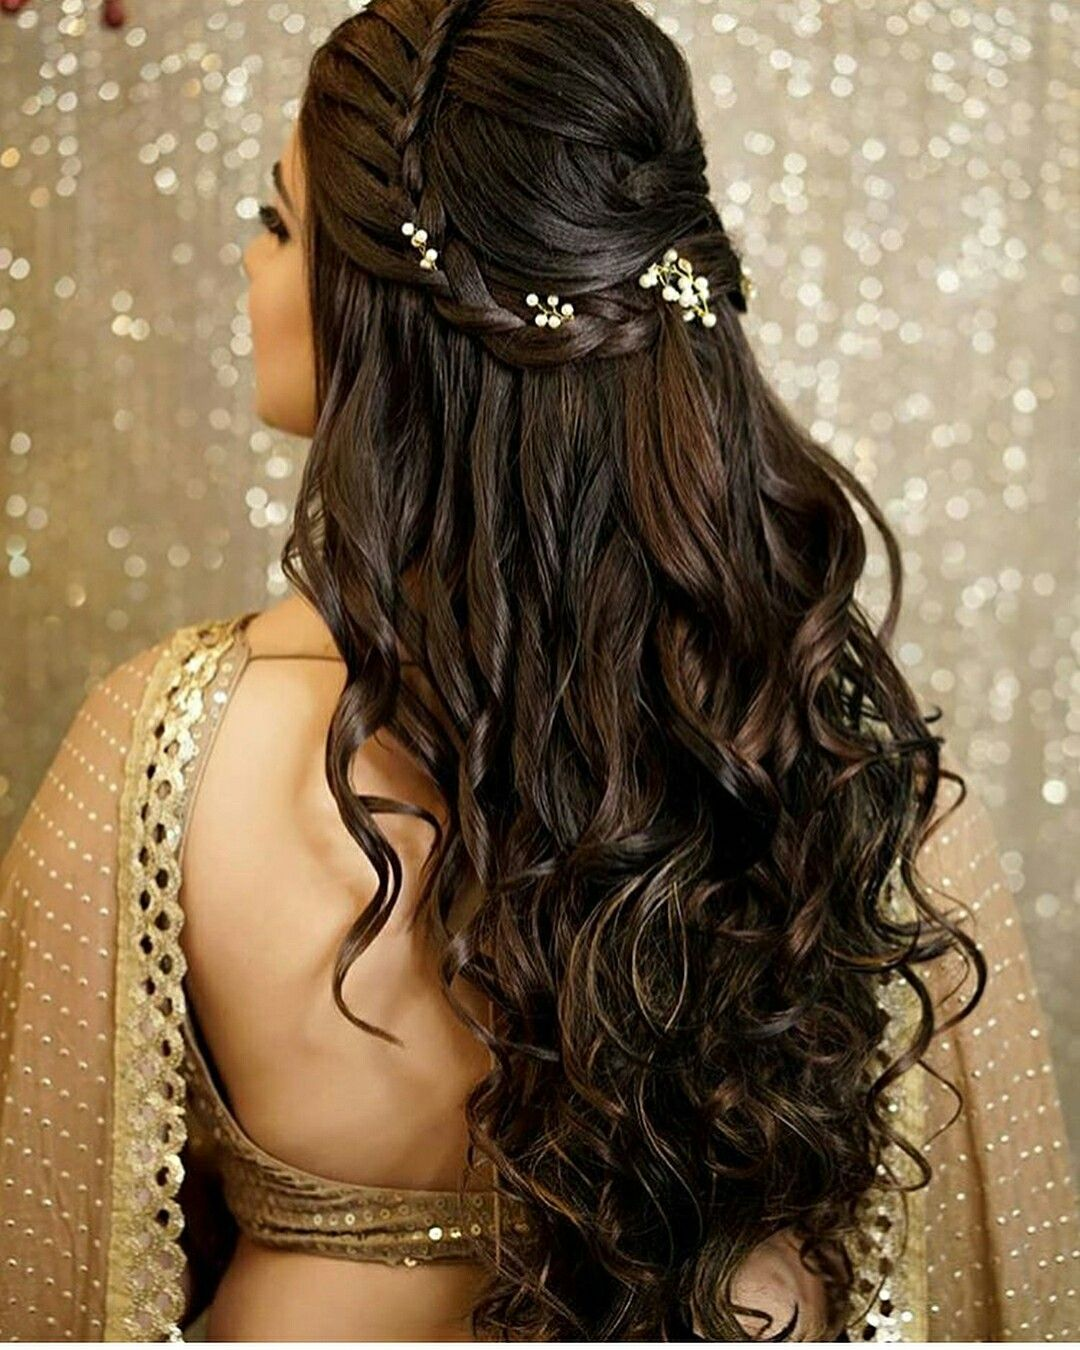 pin by safy on h a i r in 2019 | curly hair styles, indian